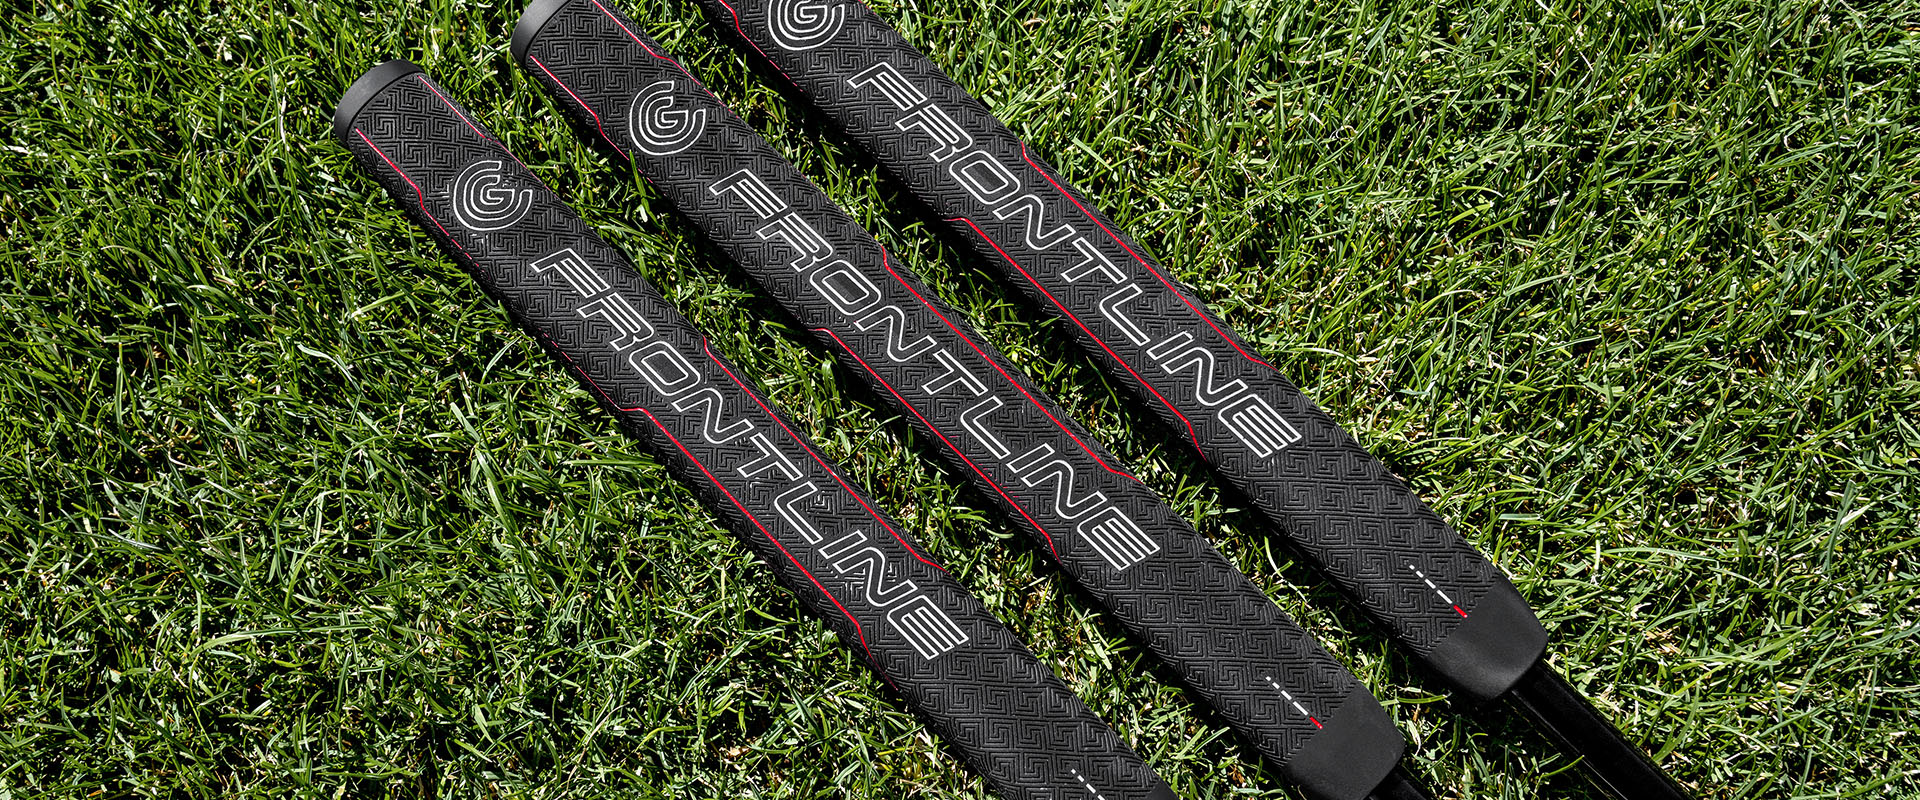 Cleveland Golf Frontline Putters Grips Grass